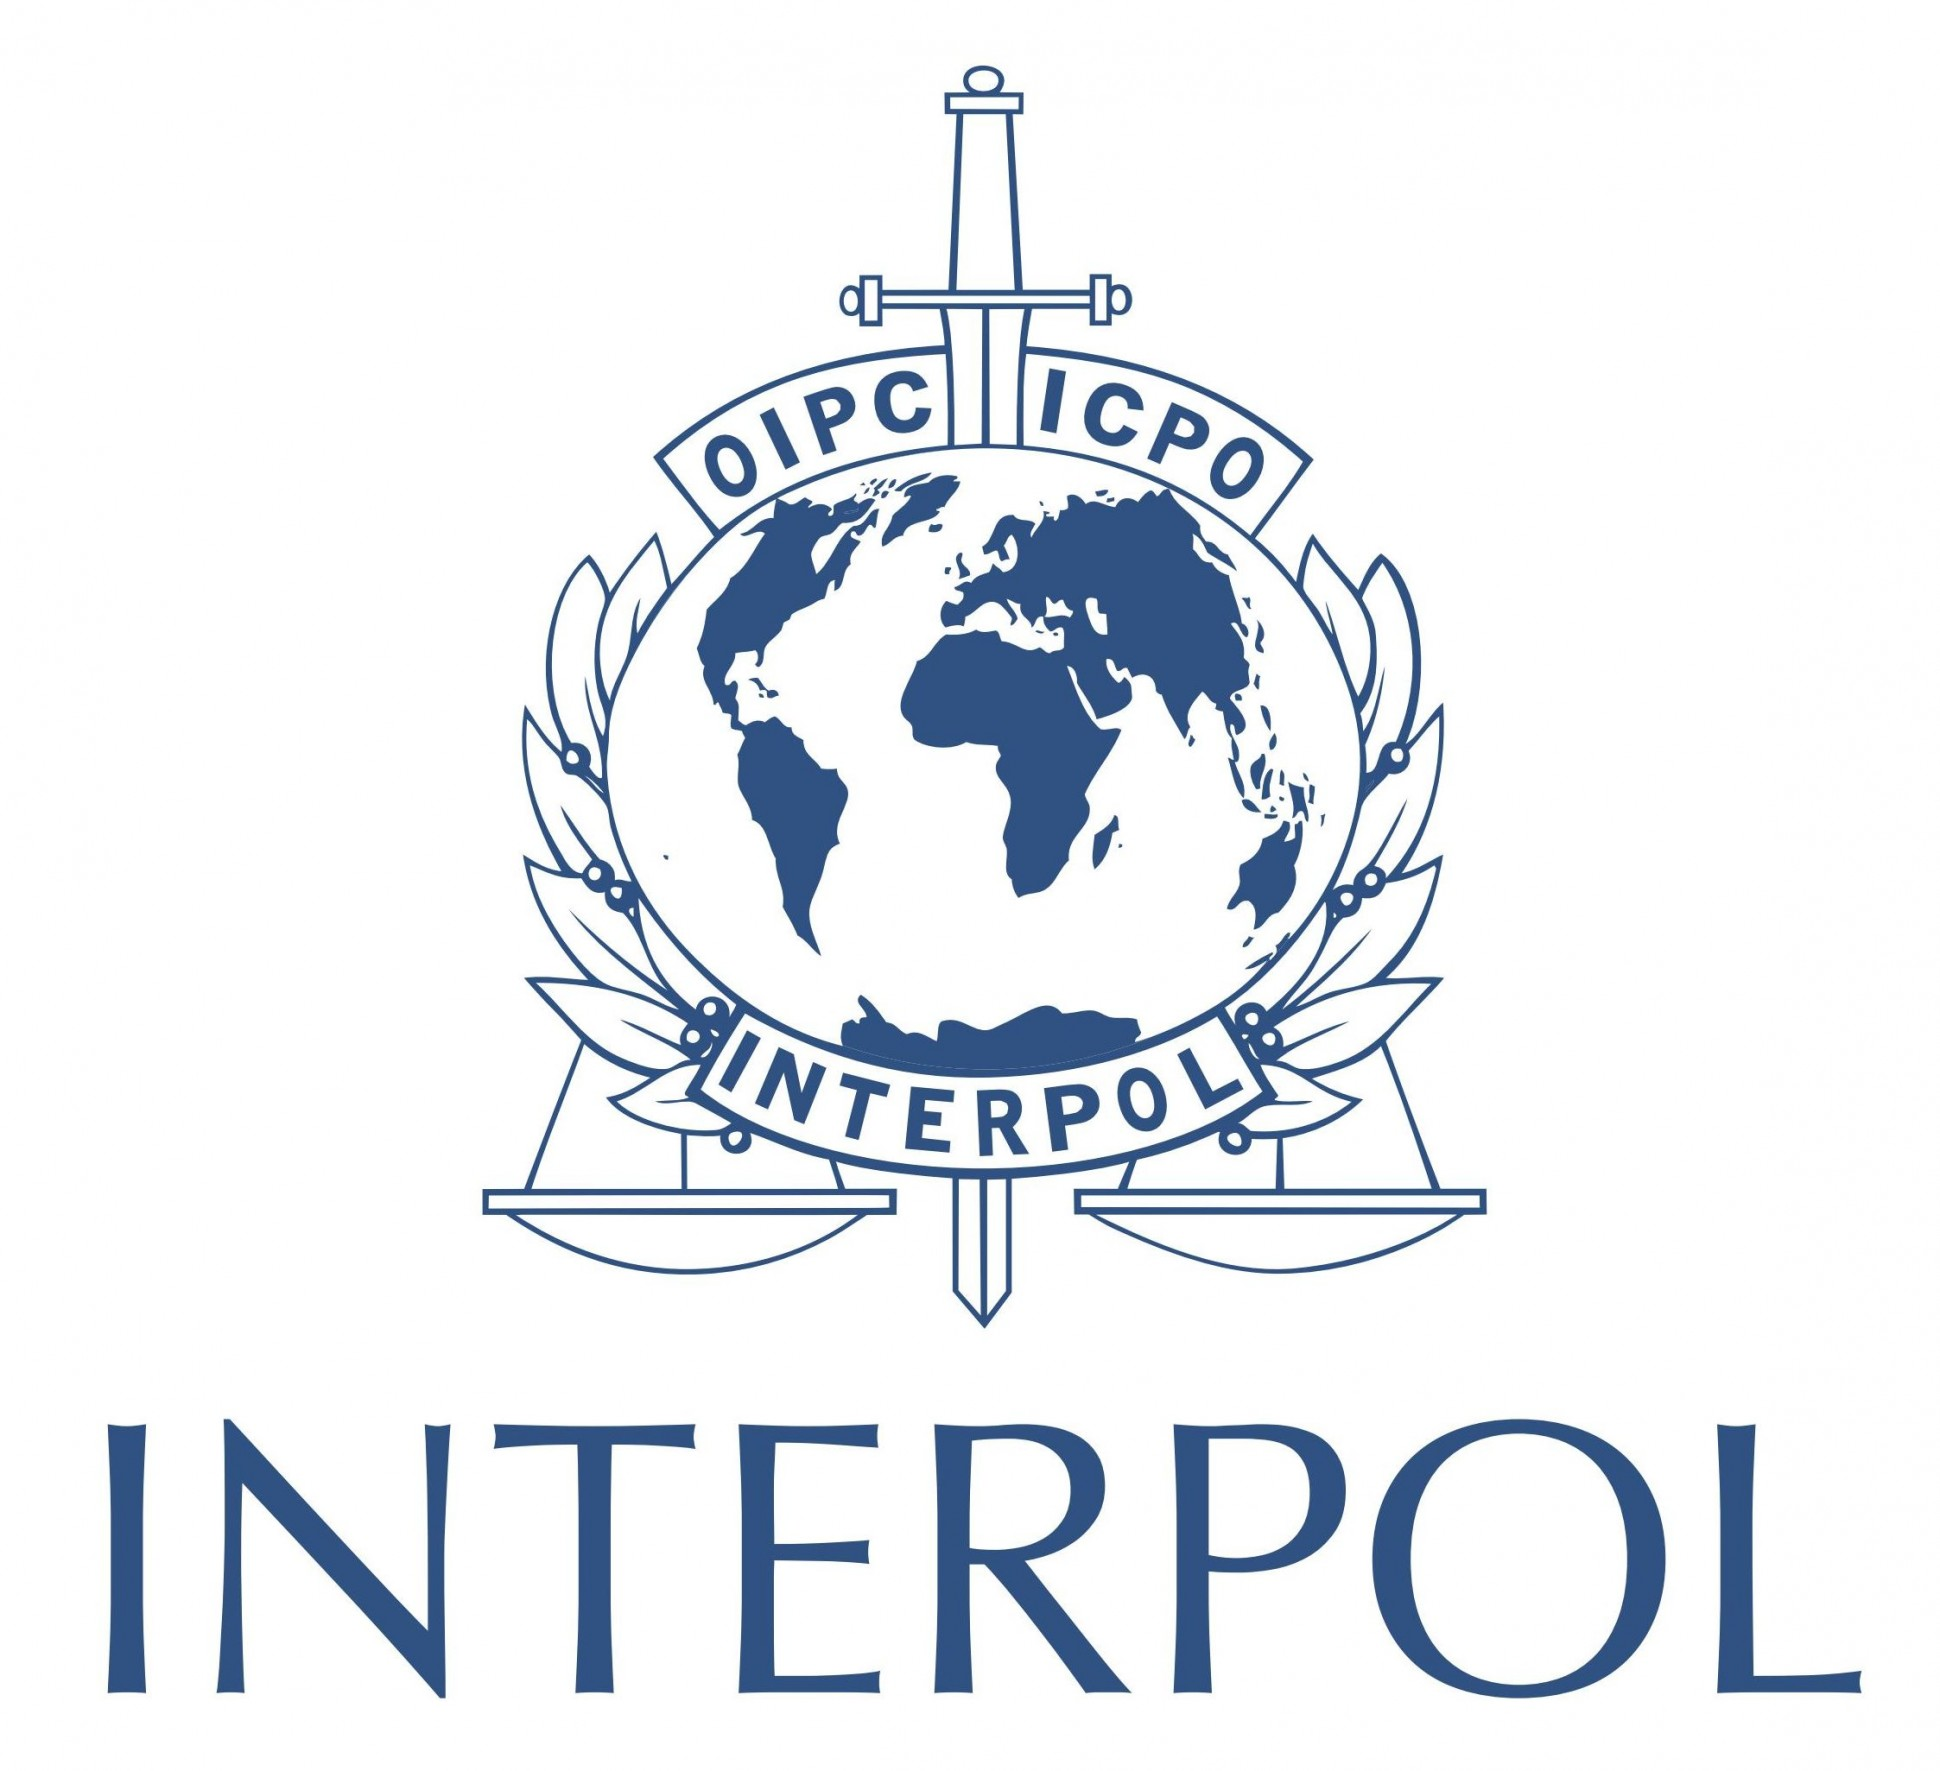 interpol-logo-1940x1771